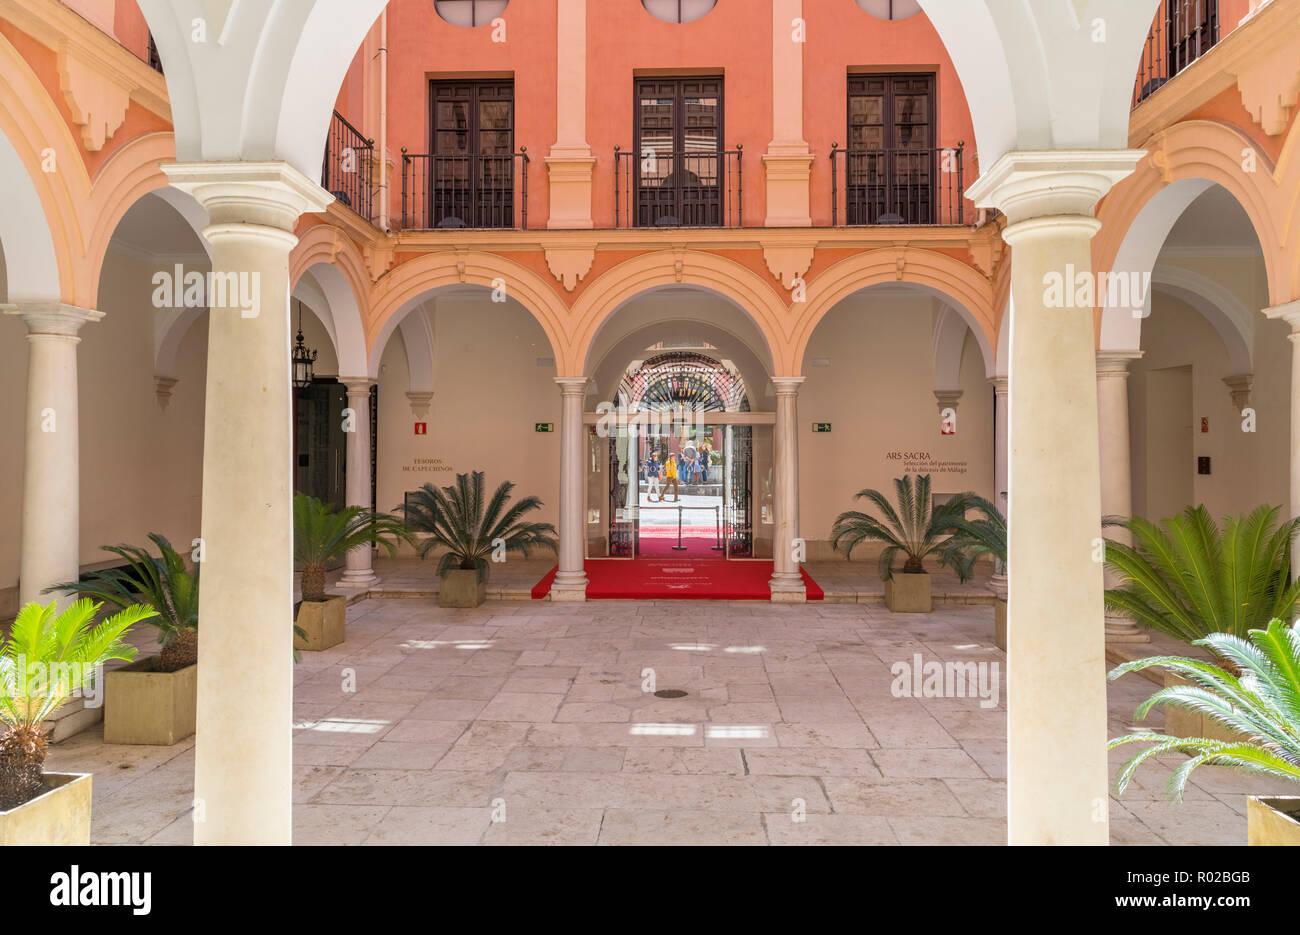 Patio in the Palacio Episcopal (Bishop's Palace), which houses a small museum, Old Town, Malaga, Costa del Sol, Andalucia, Spain - Stock Image